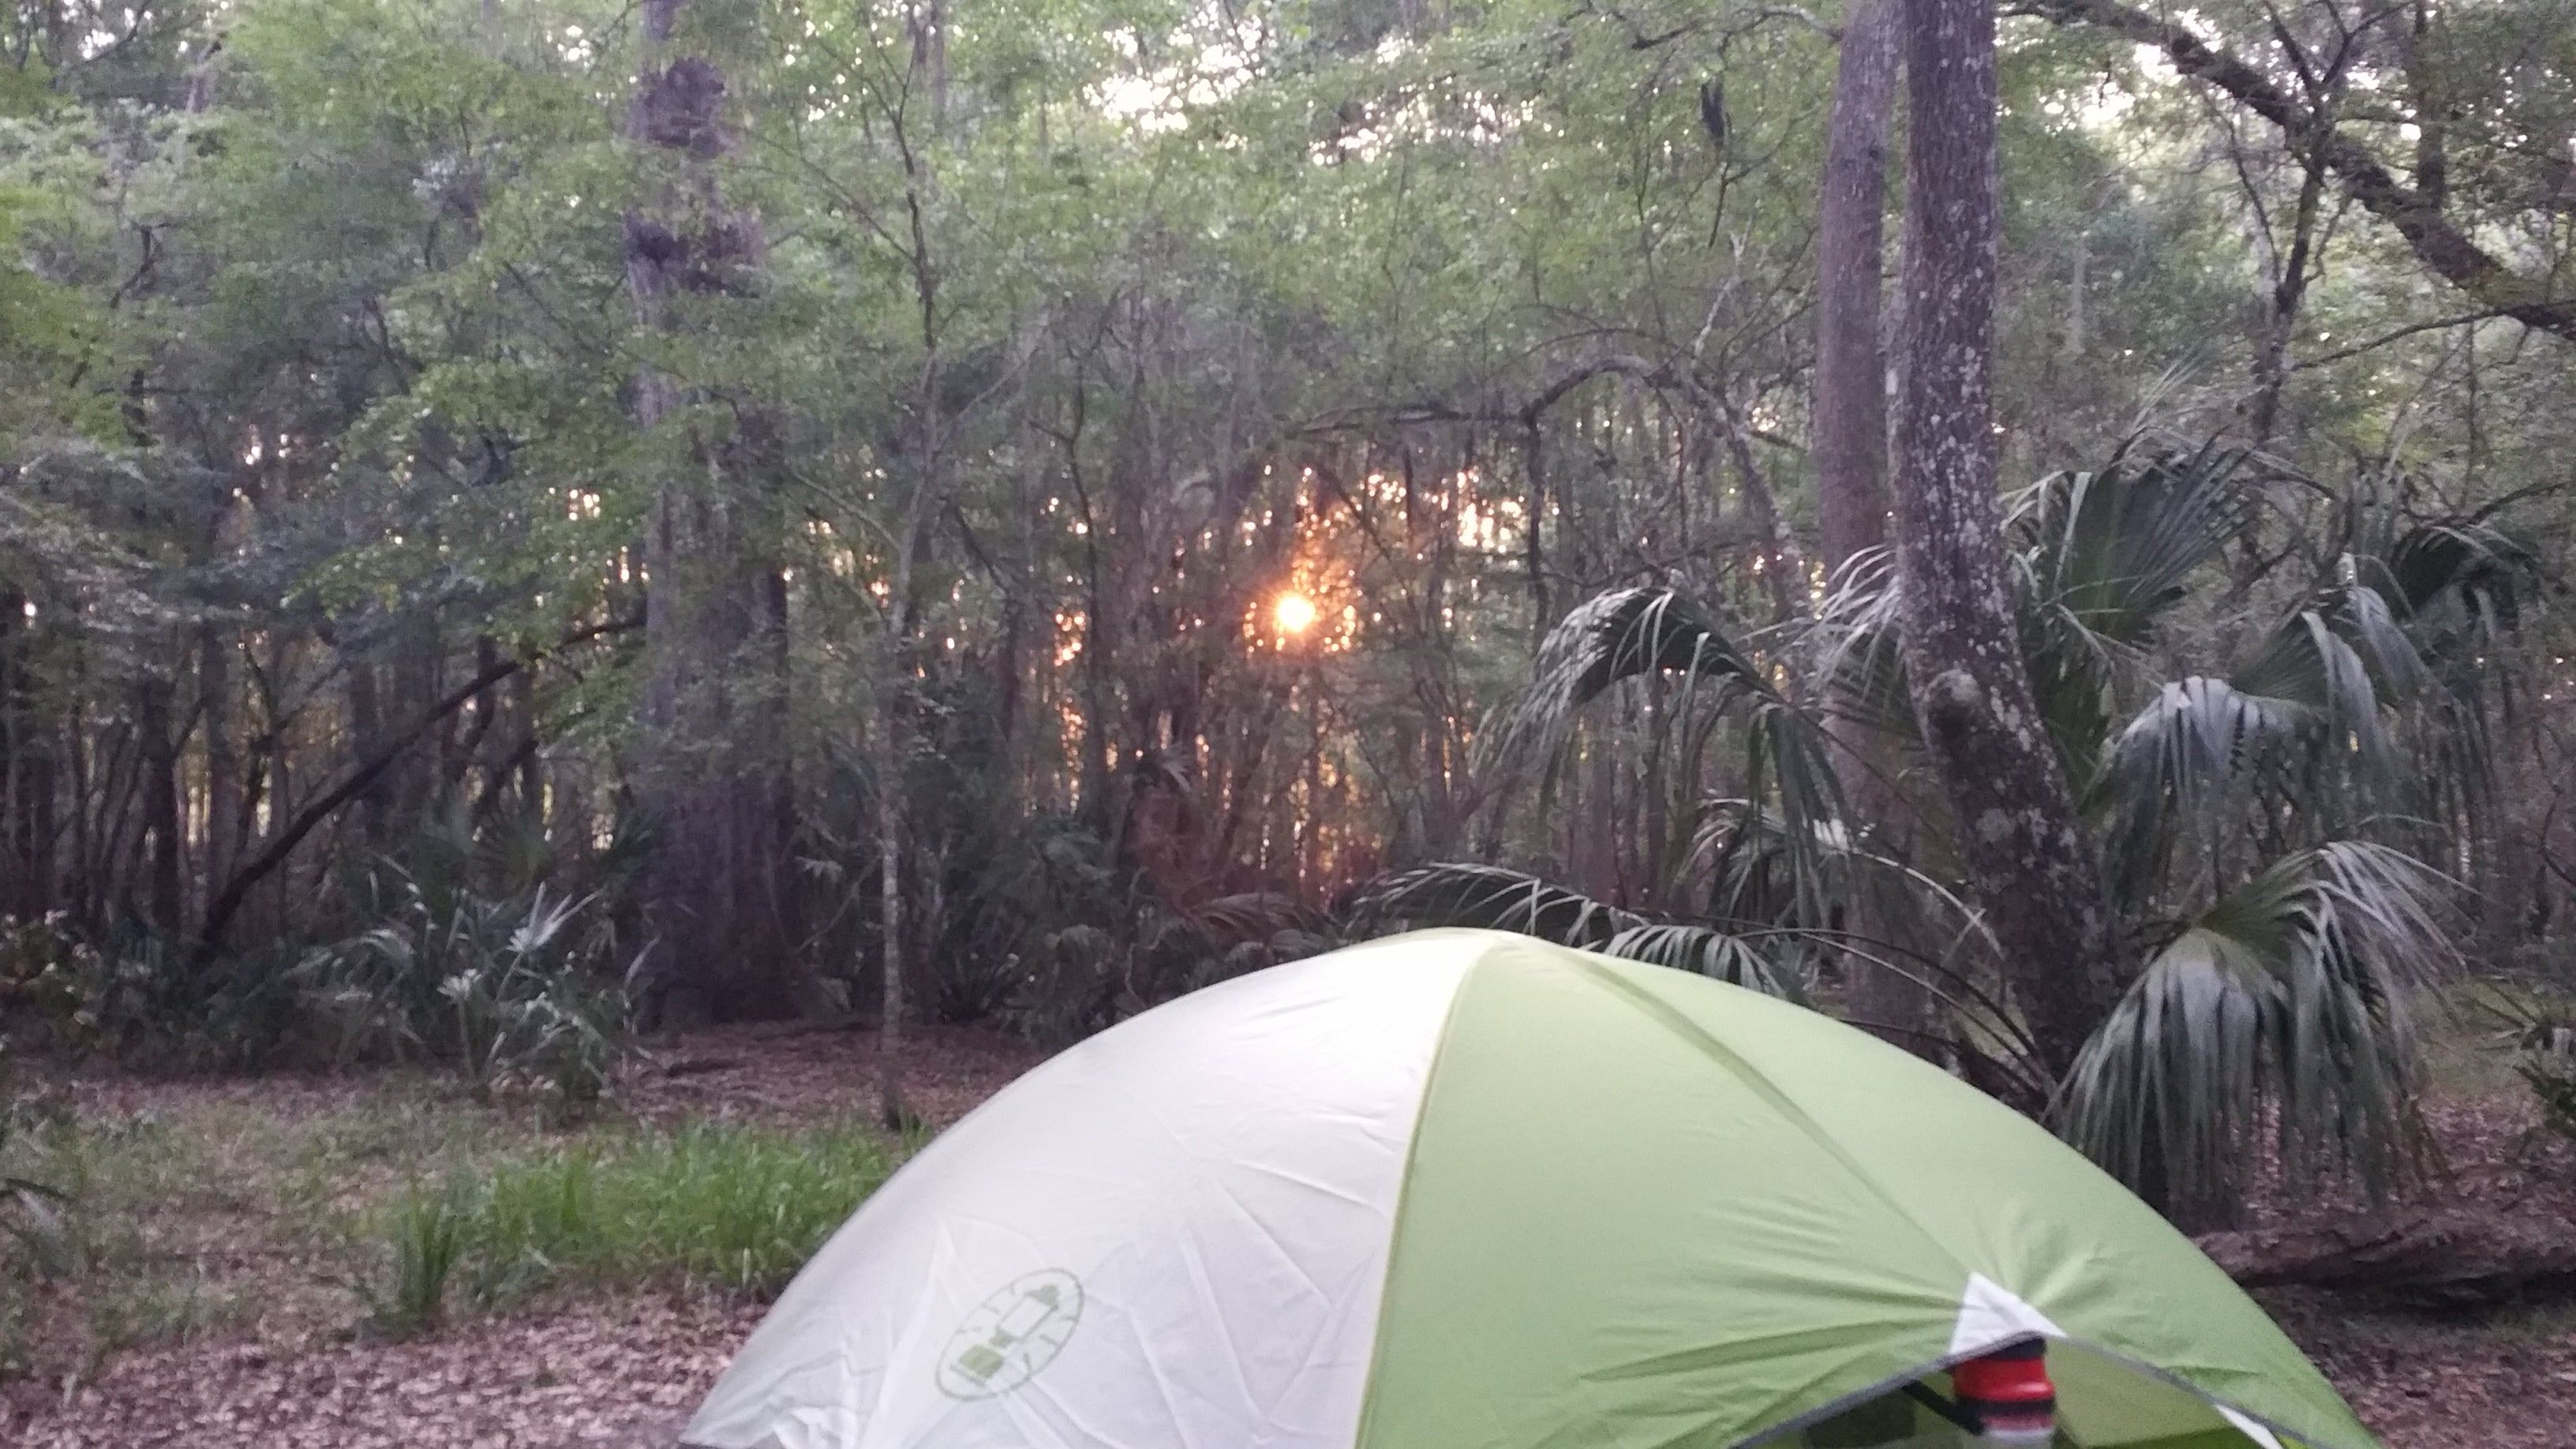 Camping in Broadview